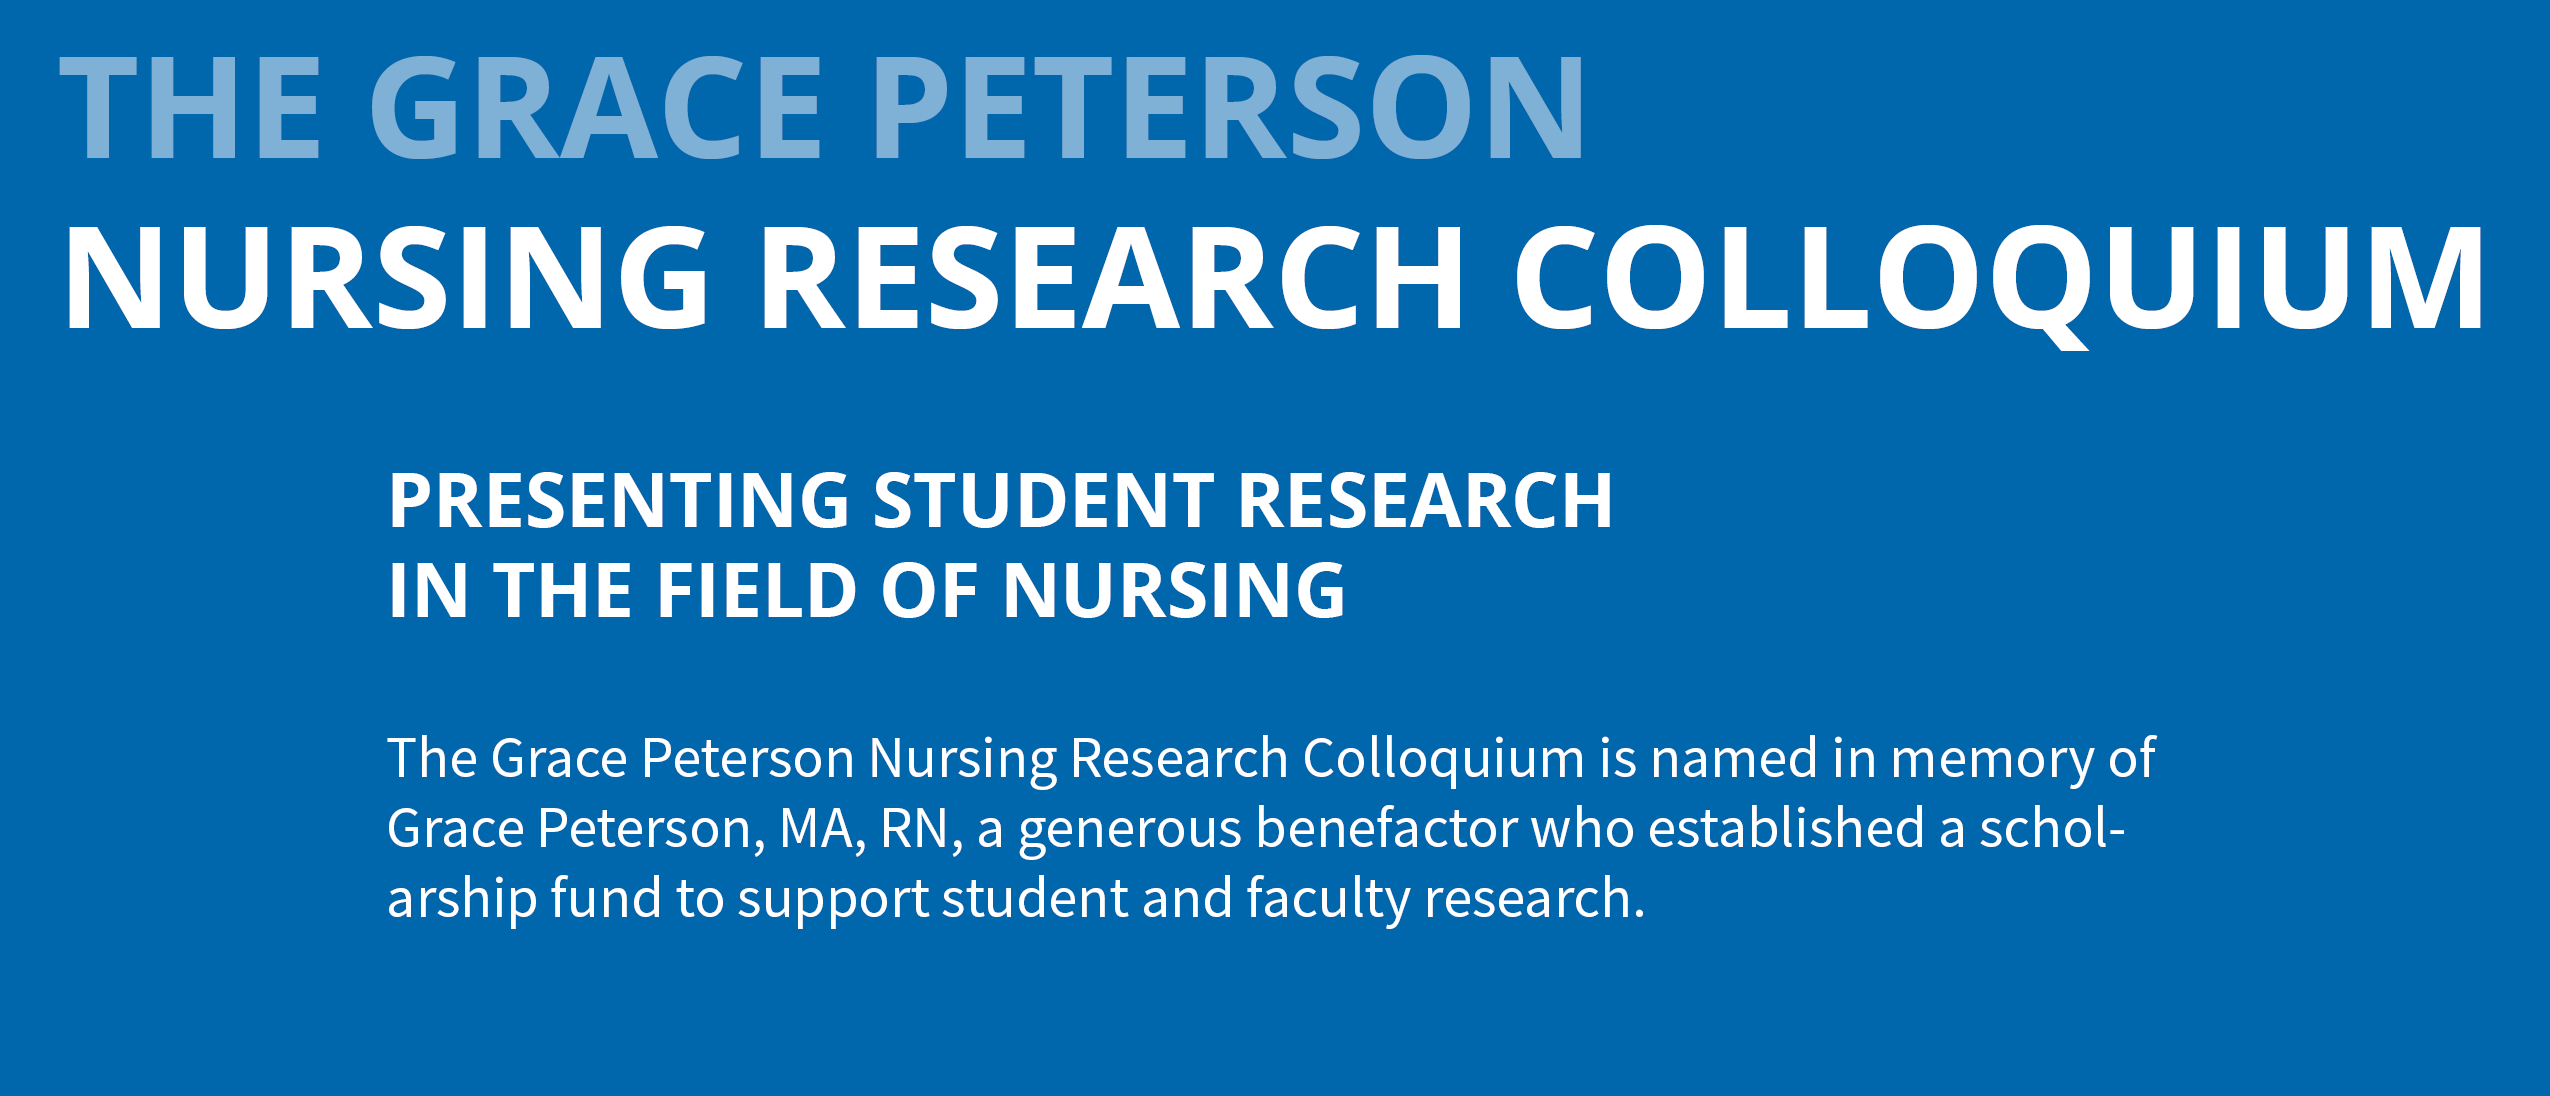 Grace Peterson Nursing Research Colloquium